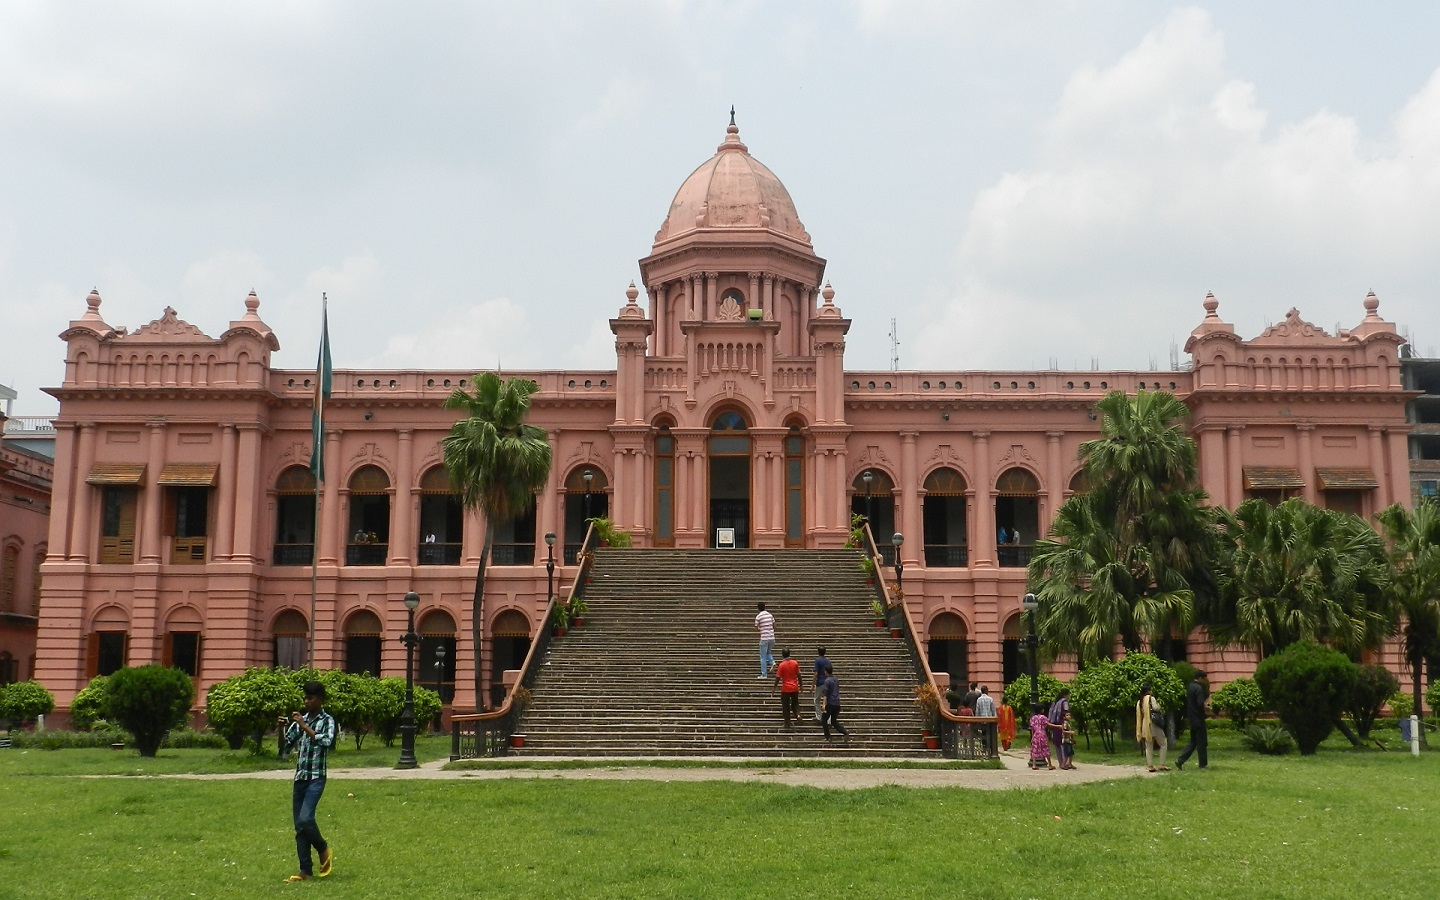 A century later, the 'pink palace' is one of the popular and historical buildings in Dhaka